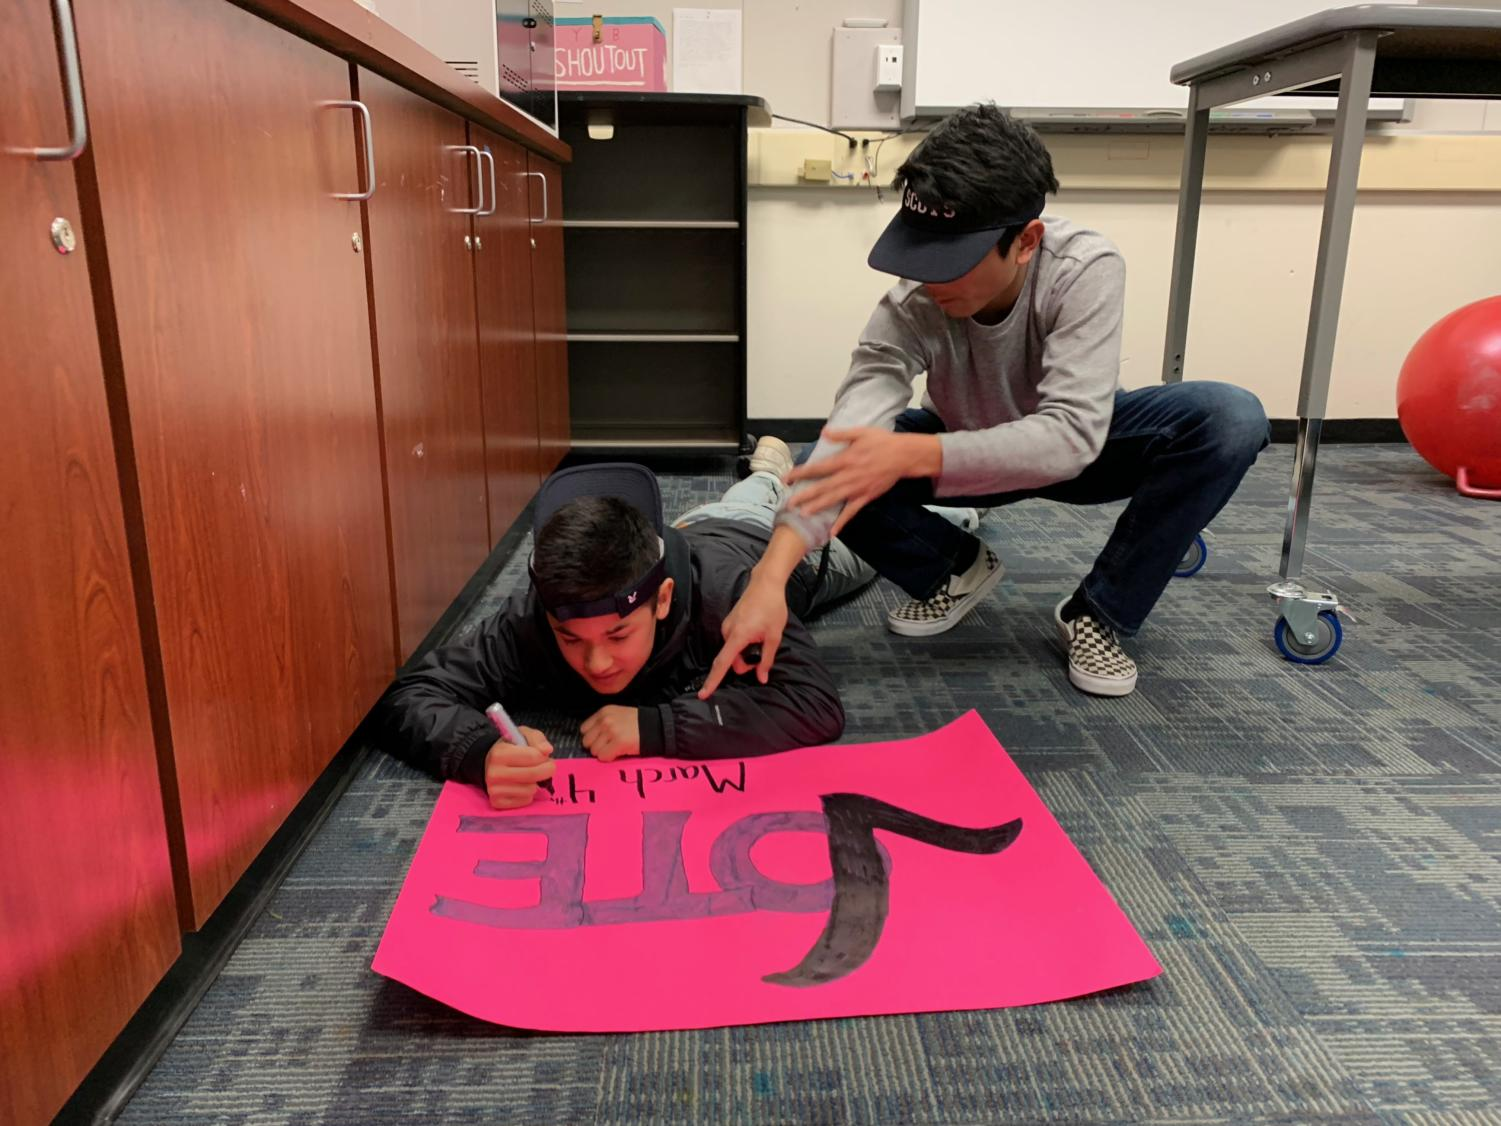 Freshmen Jono Sison and Nate Hsich create a poster publicizing the election.